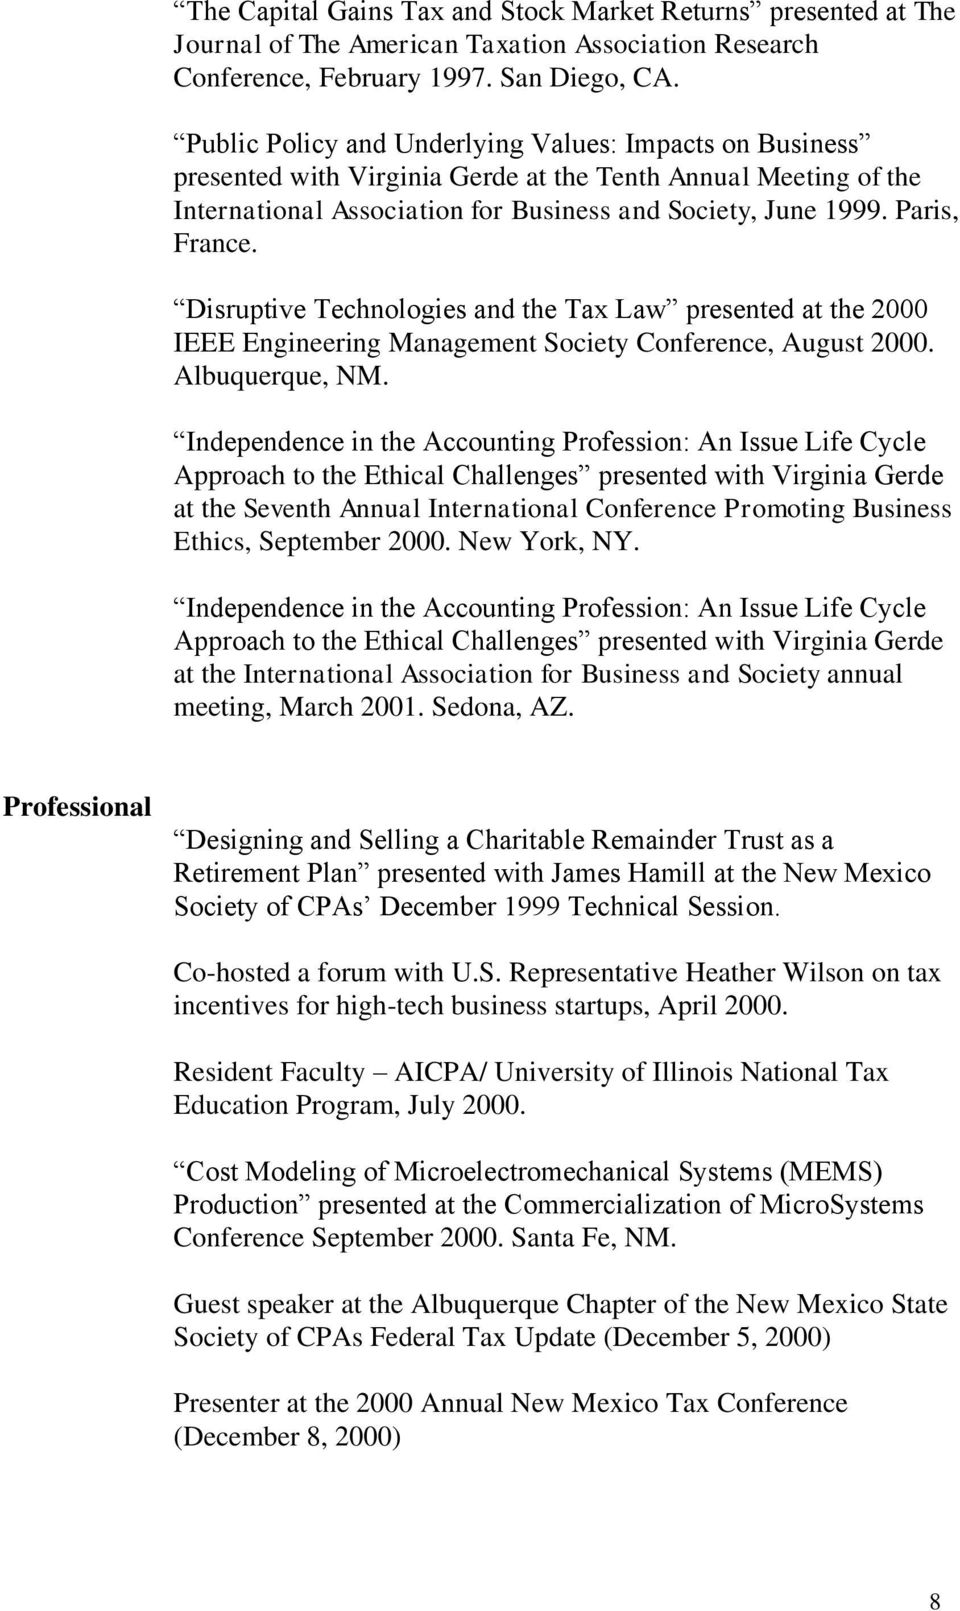 Disruptive Technologies and the Tax Law presented at the 2000 IEEE Engineering Management Society Conference, August 2000. Albuquerque, NM.